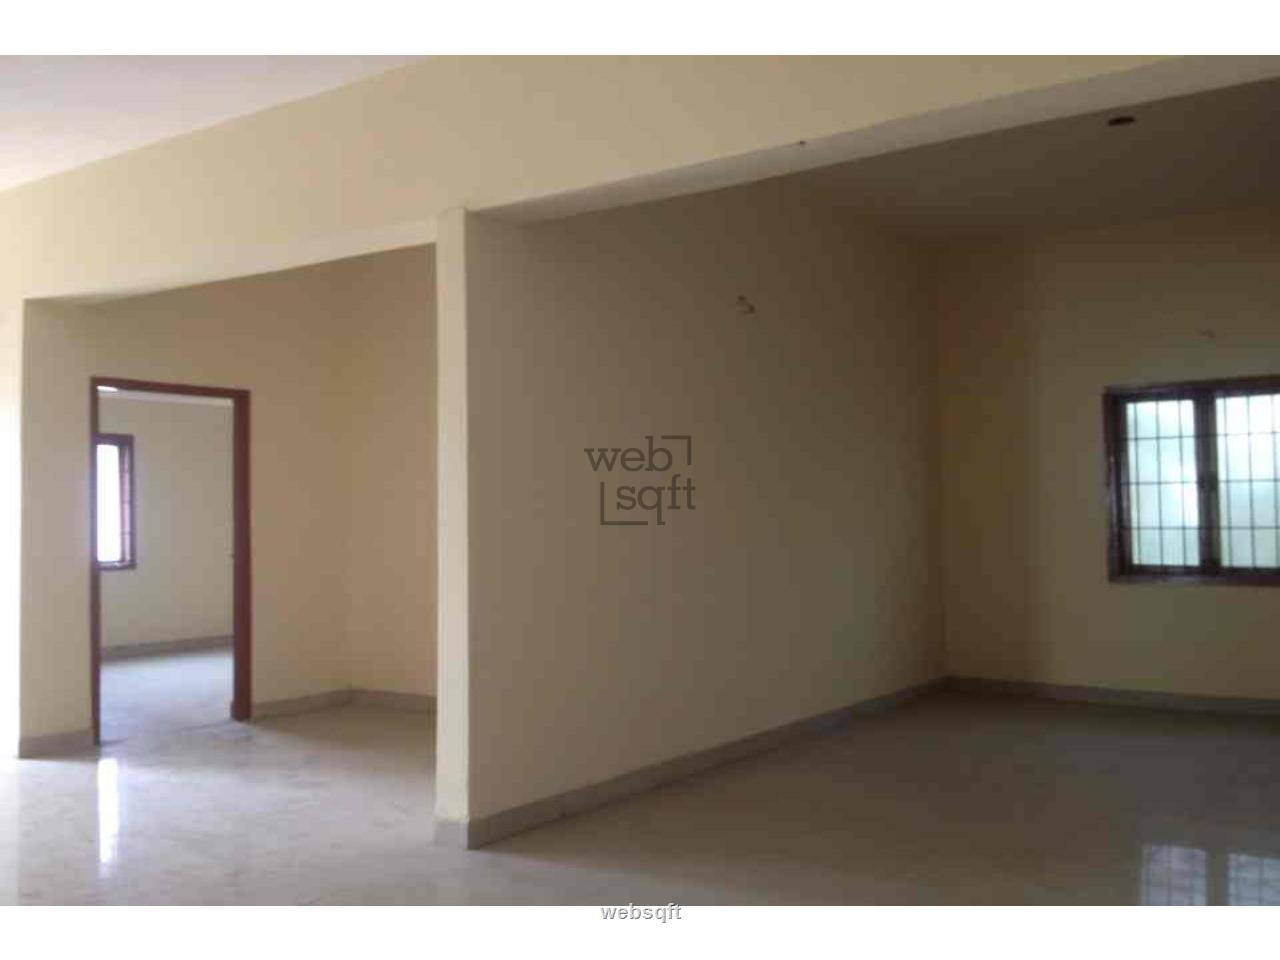 Websqft - Residential Apartment-flats - Property for Sale - in 1884Sq-ft/Gandhi Nagar at Rs 7534116